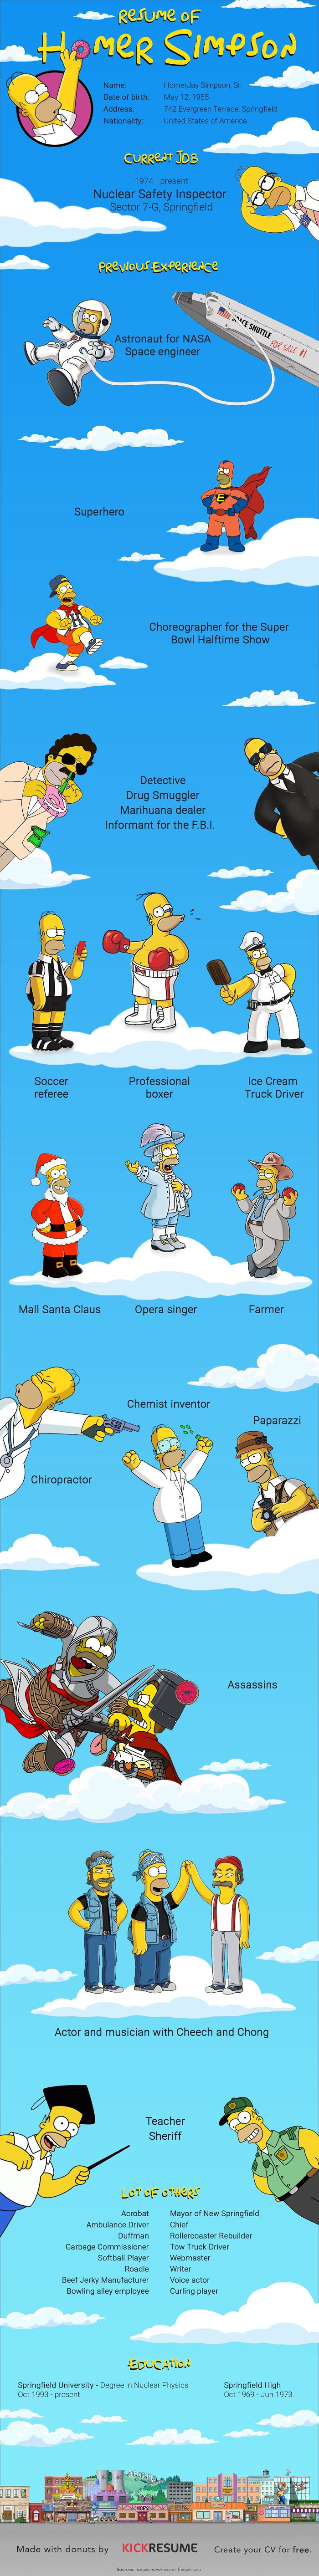 Infographic Resume Of Homer Simpson.